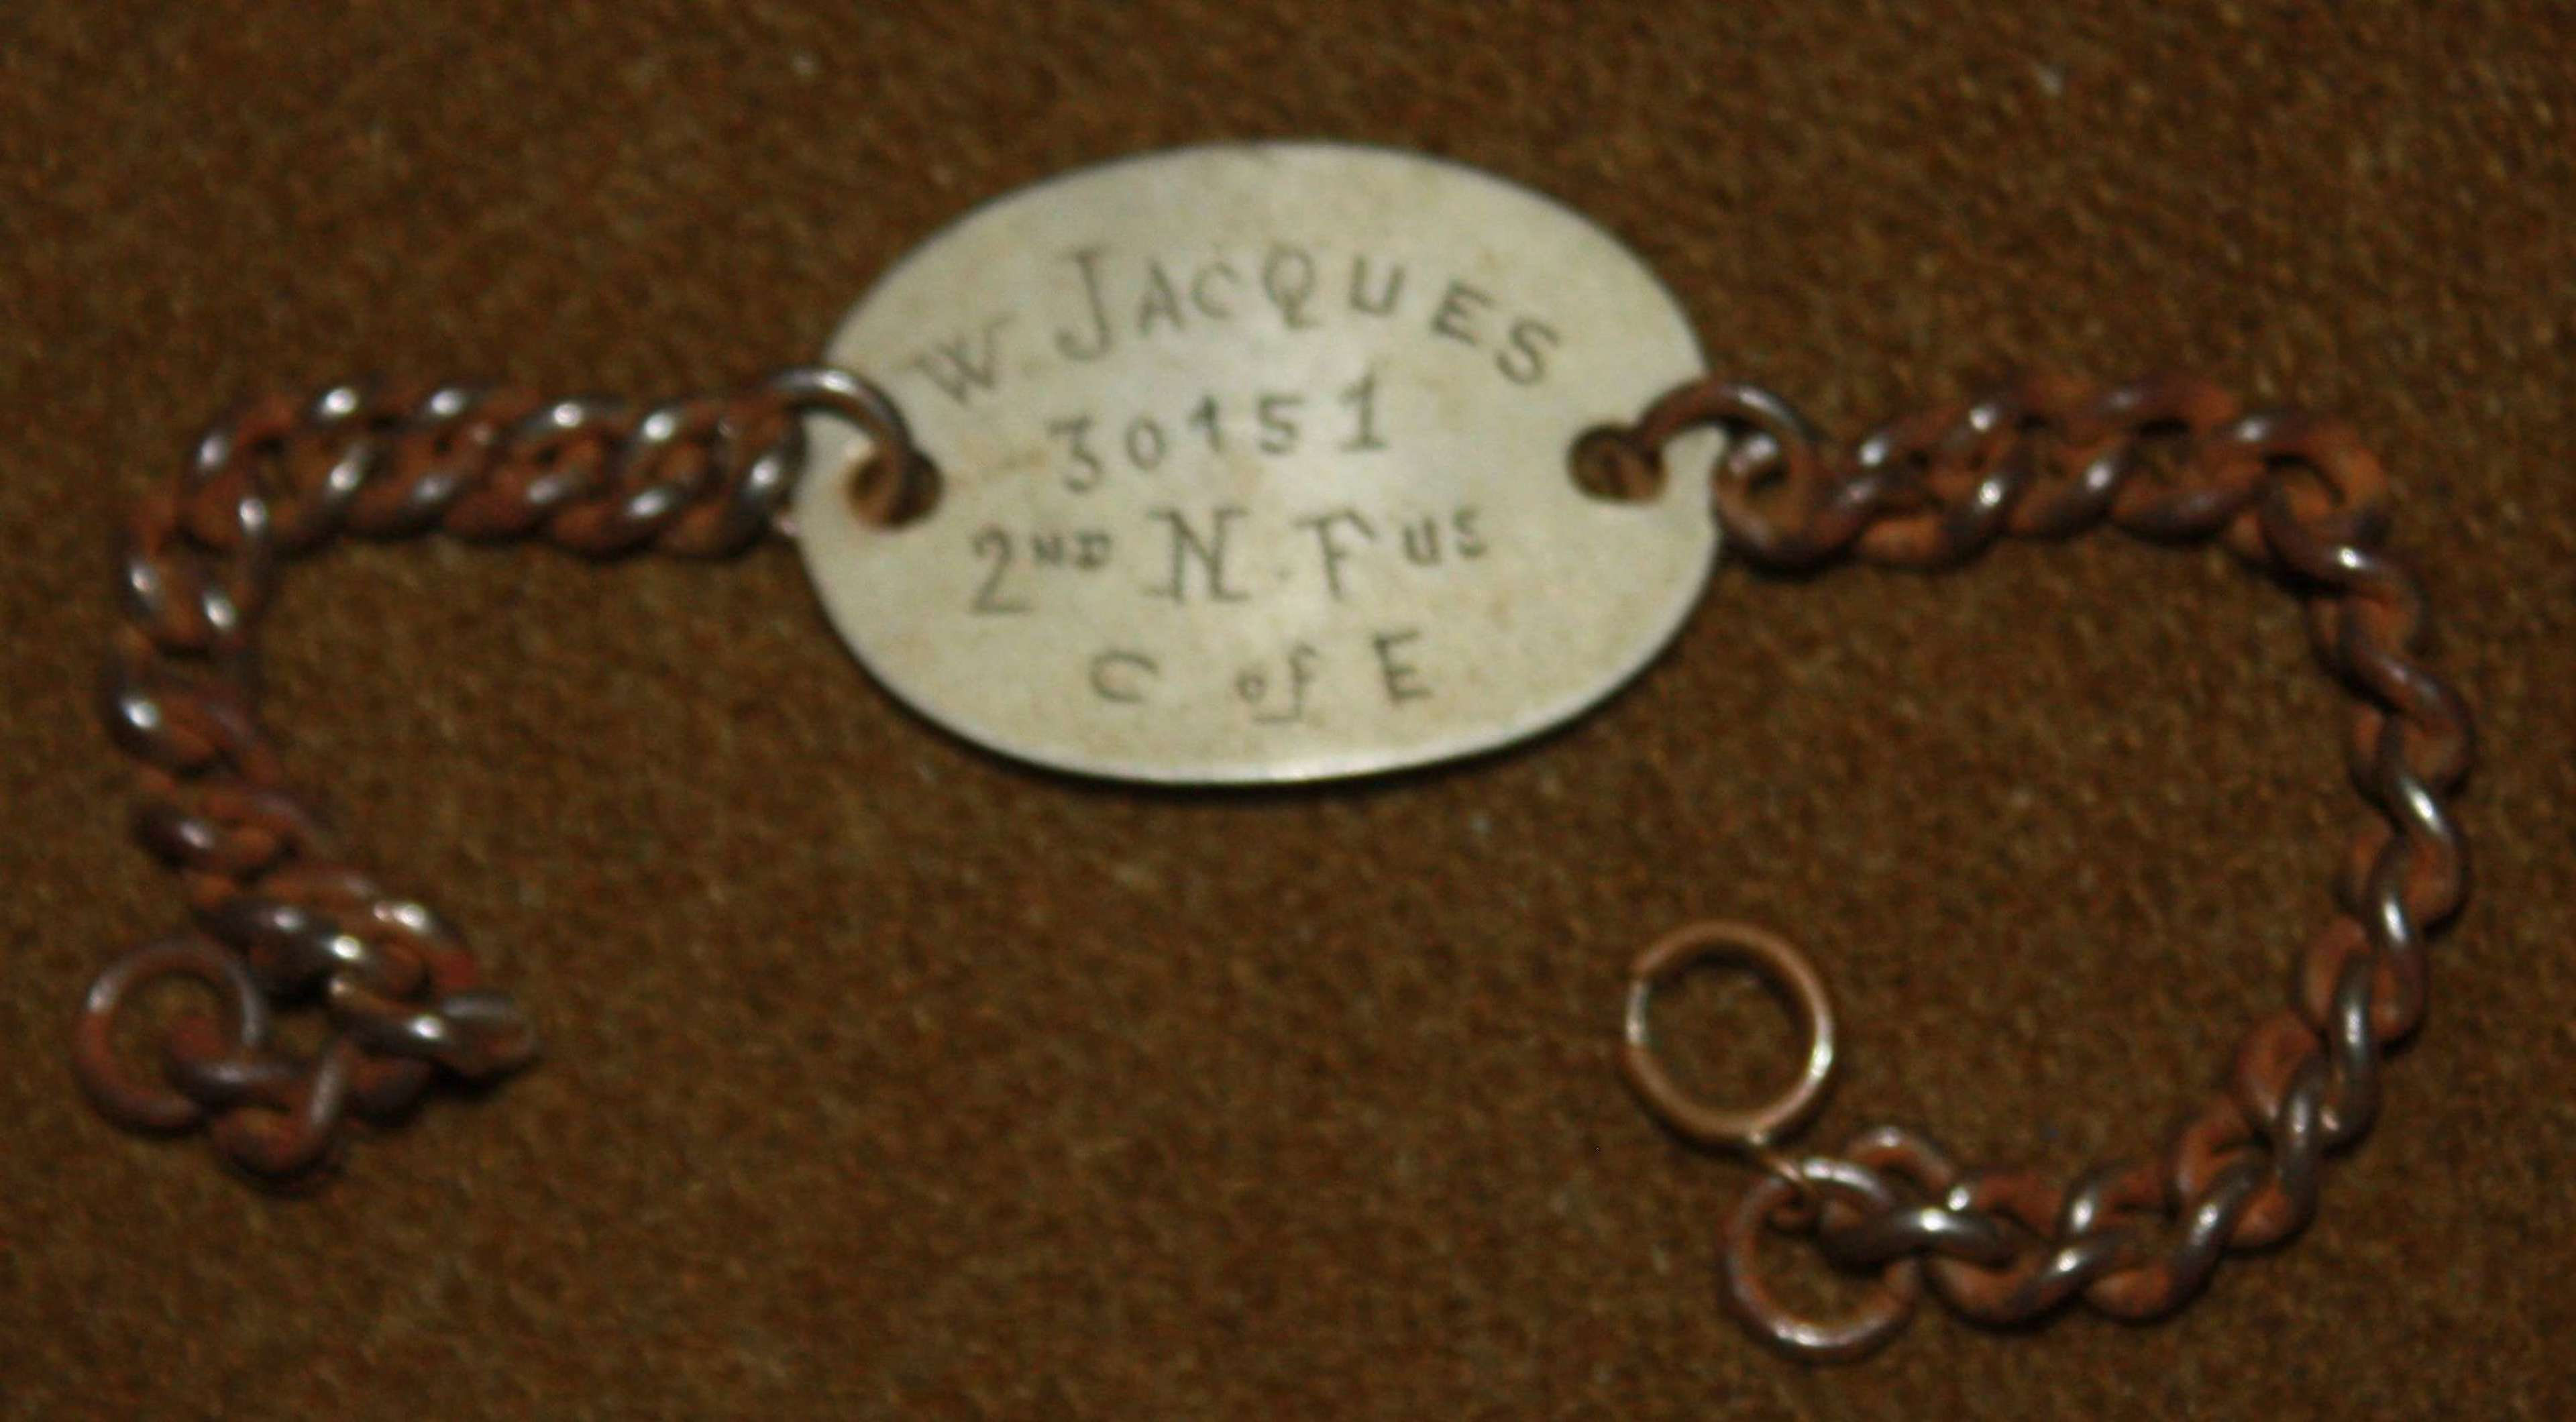 A W JAQUES 30151 WWI ID BRACLET